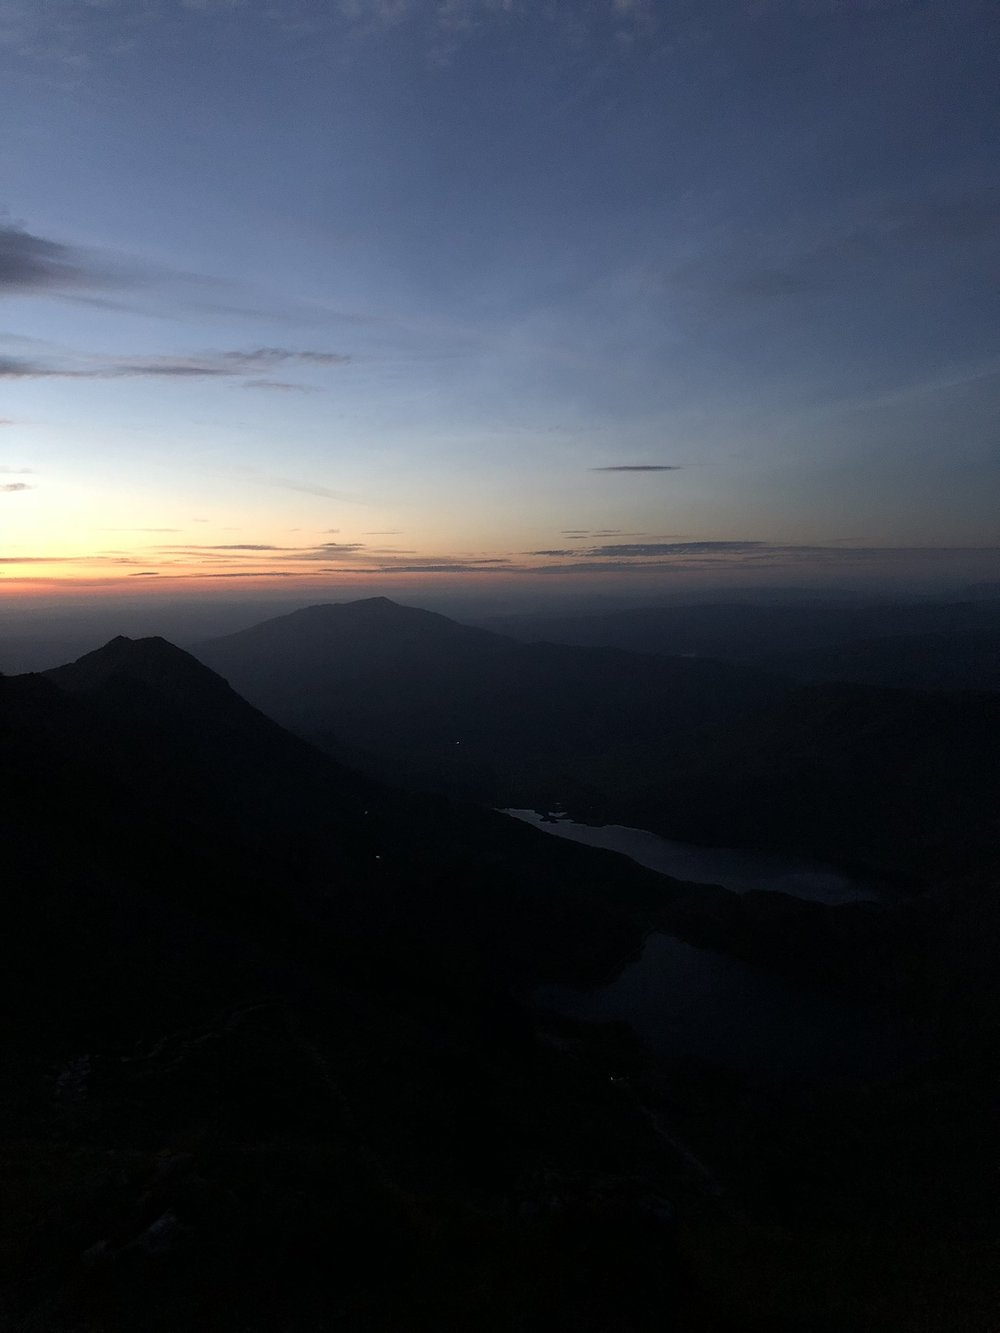 Even at 1am there was still a glow from the sun rising. We were all well prepared with our head torches but they weren't really needed. The bright glow of the sky ignited our excitement and drive to get to the summit.